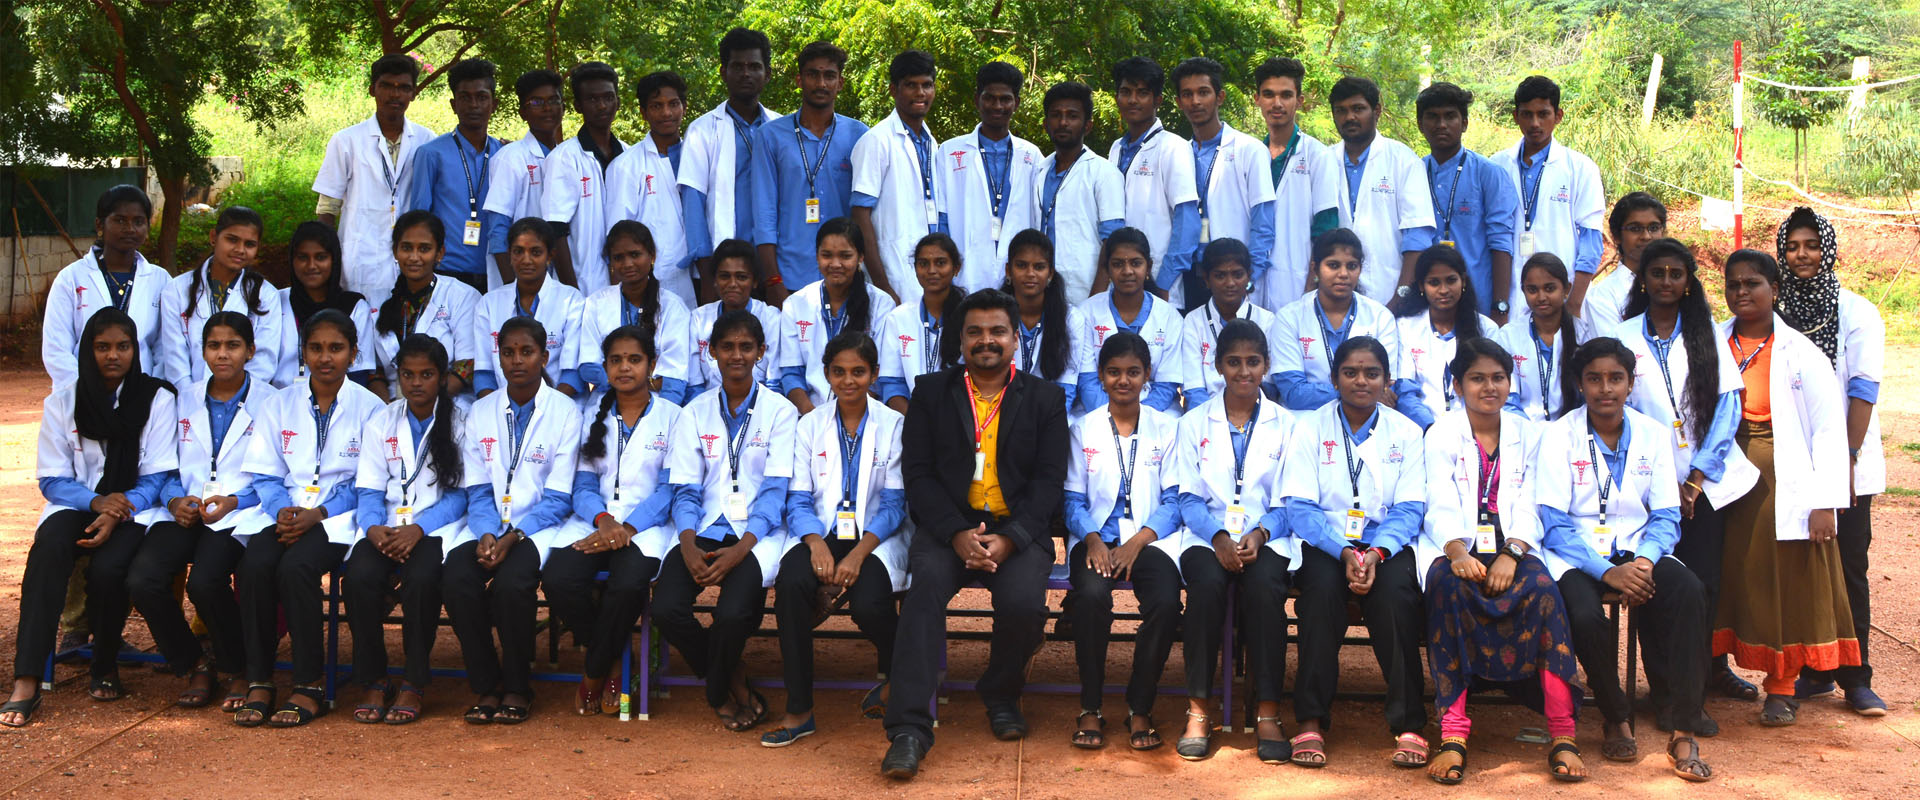 Anna College 91 98421 13020 Anna Science Management College B Sc Optometry B Sc Perfusionist Bba Aviation Management B Sc Fashion Design Technology B Sc Catering Hotel Management B Com With Computer Application